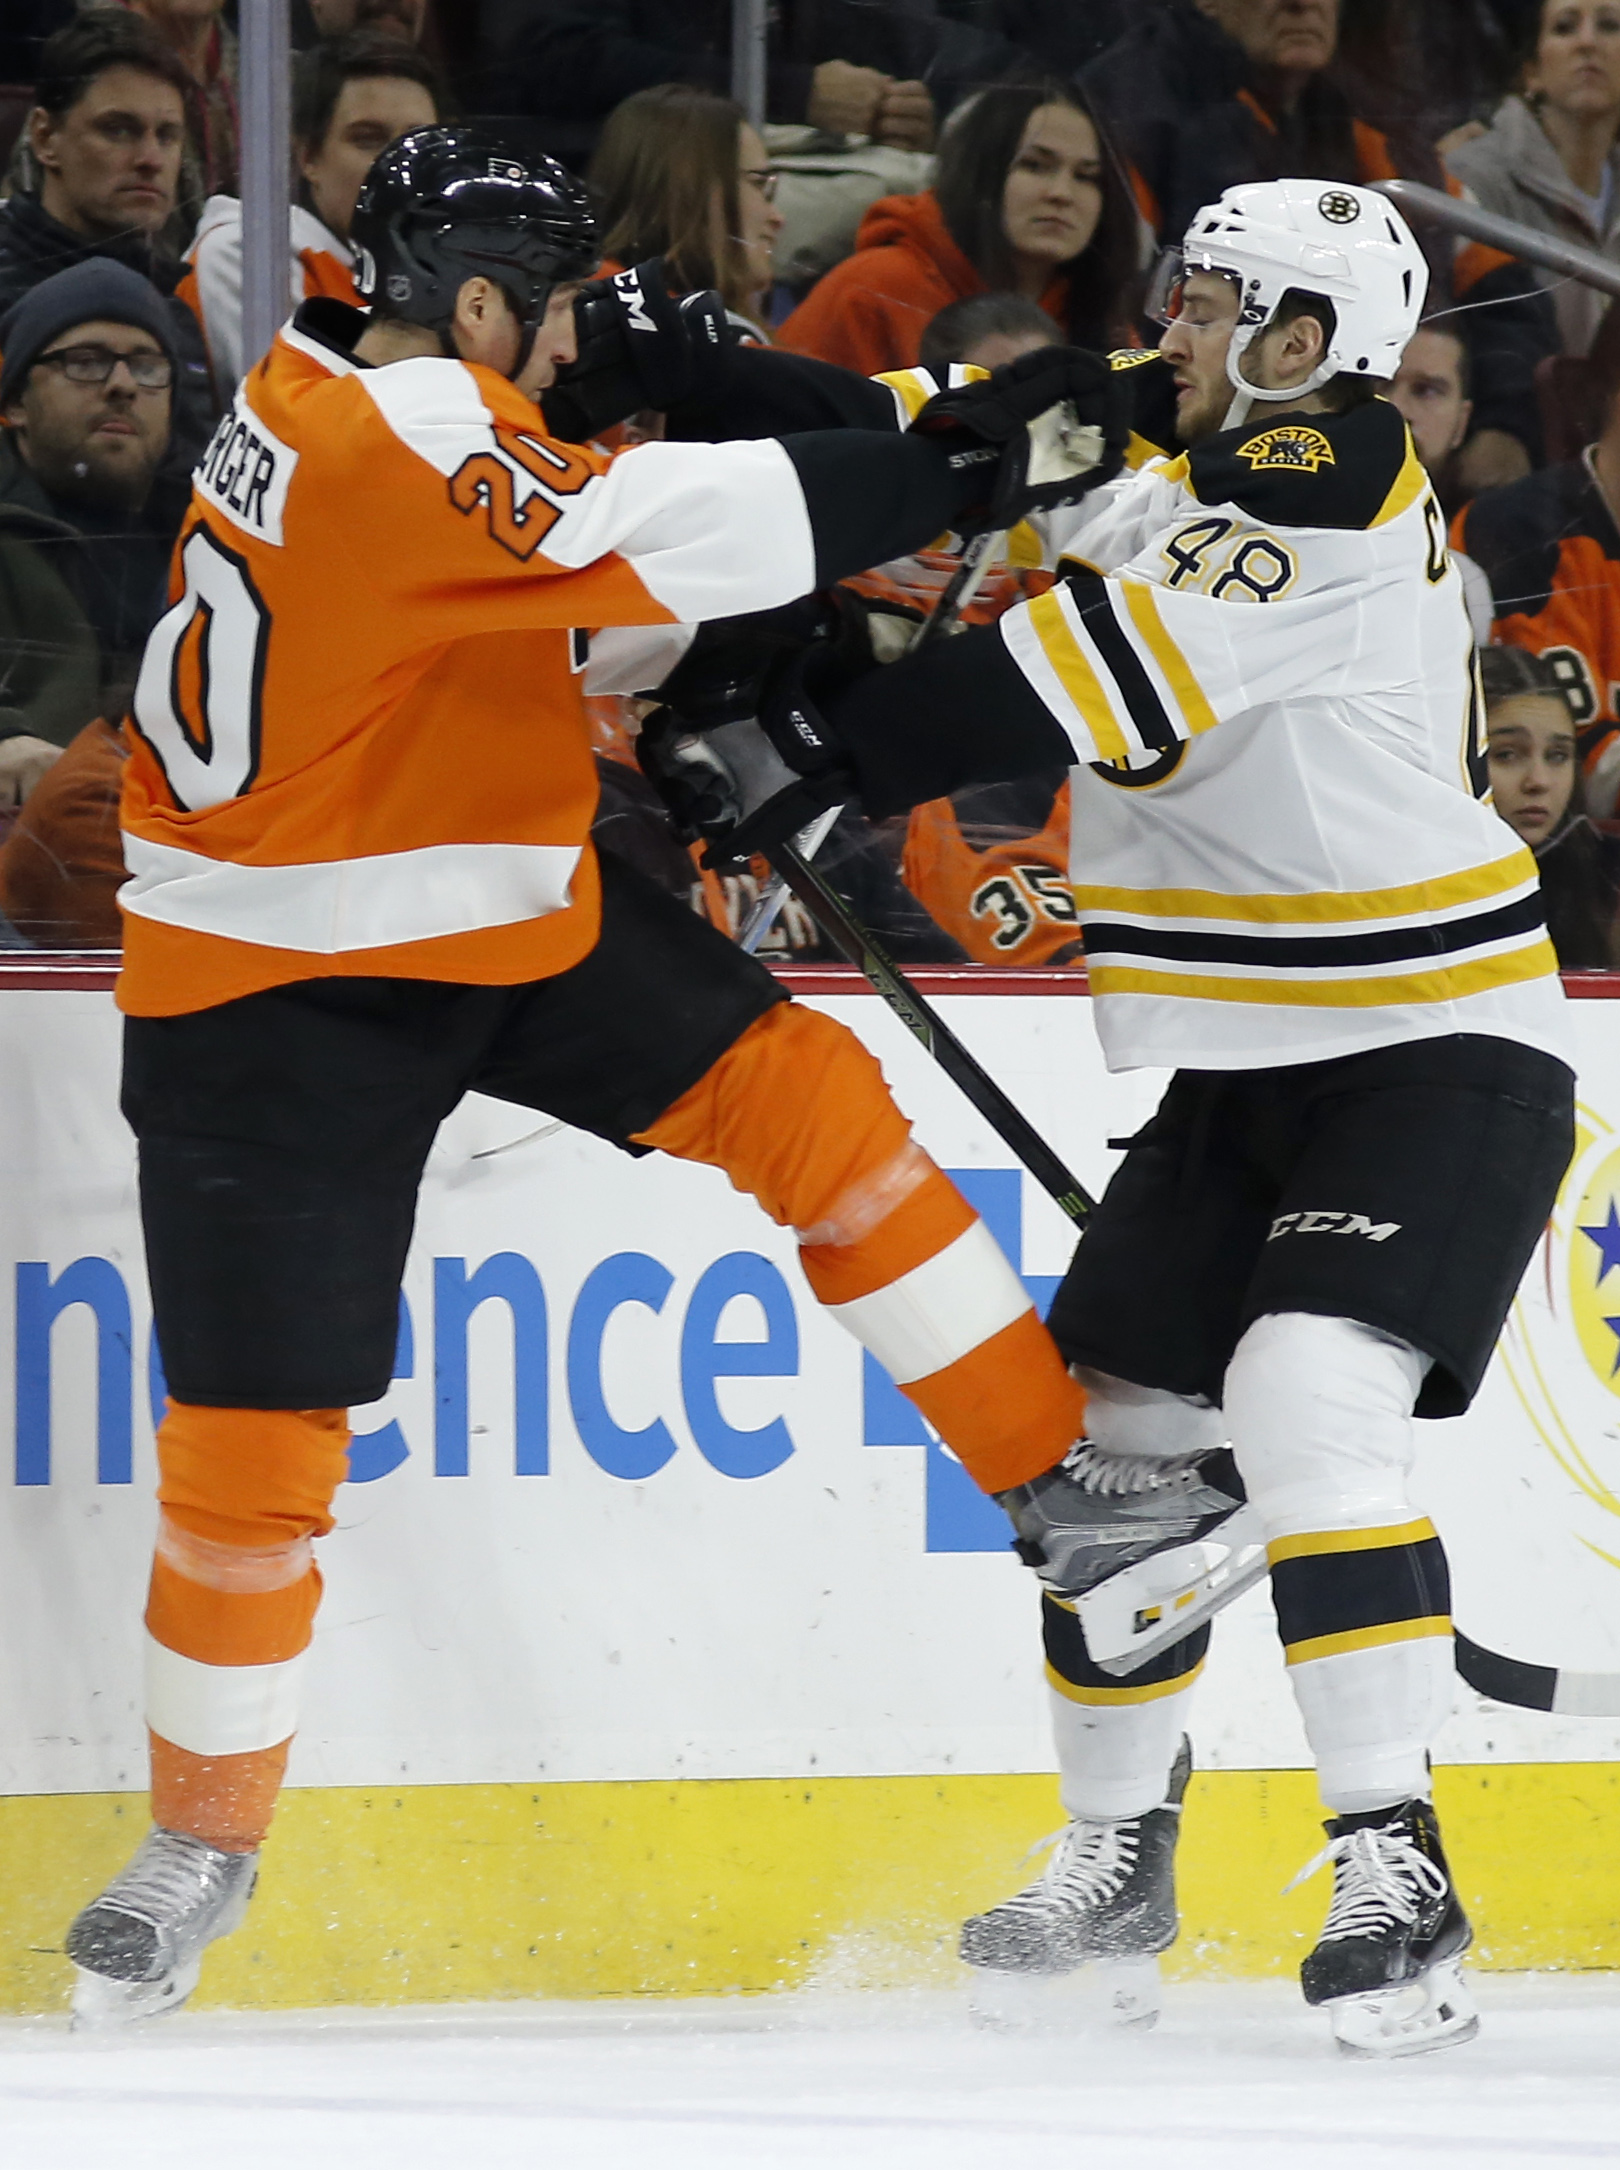 Philadelphia Flyers' R.J. Umberger, left, and Boston Bruins' Colin Miller collide during the first period of an NHL hockey game, Monday, Jan. 25, 2016, in Philadelphia. (AP Photo/Matt Slocum)